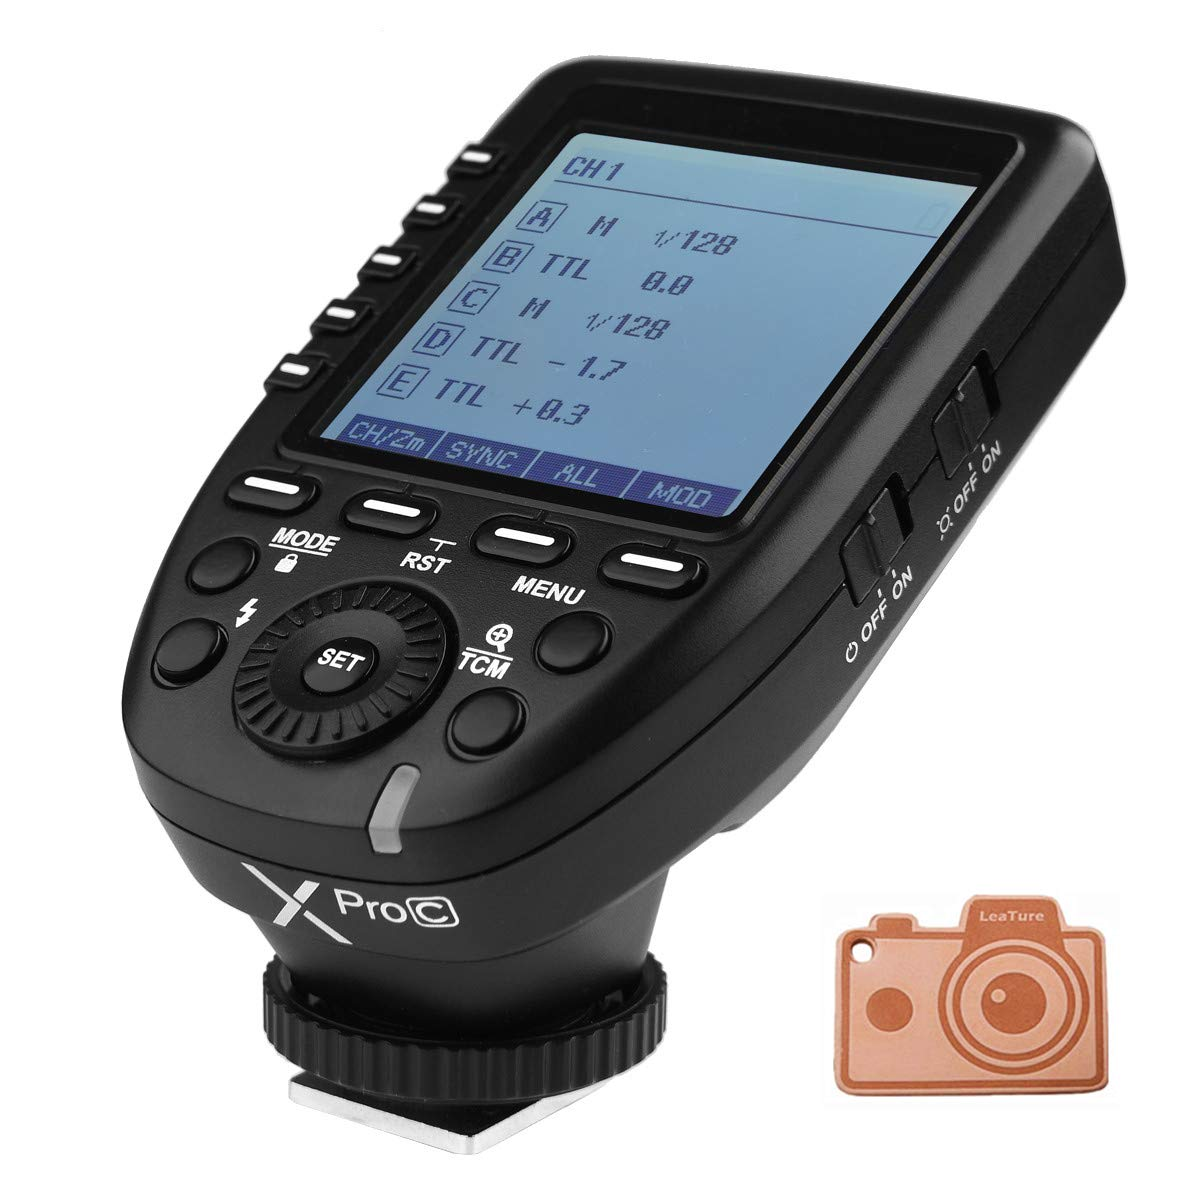 GODOX XPro-C E-TTL 2.4G Wireless High Speed Sync 1/8000s X System High-Speed Flash Trigger for Canon EOS Cameras by Godox